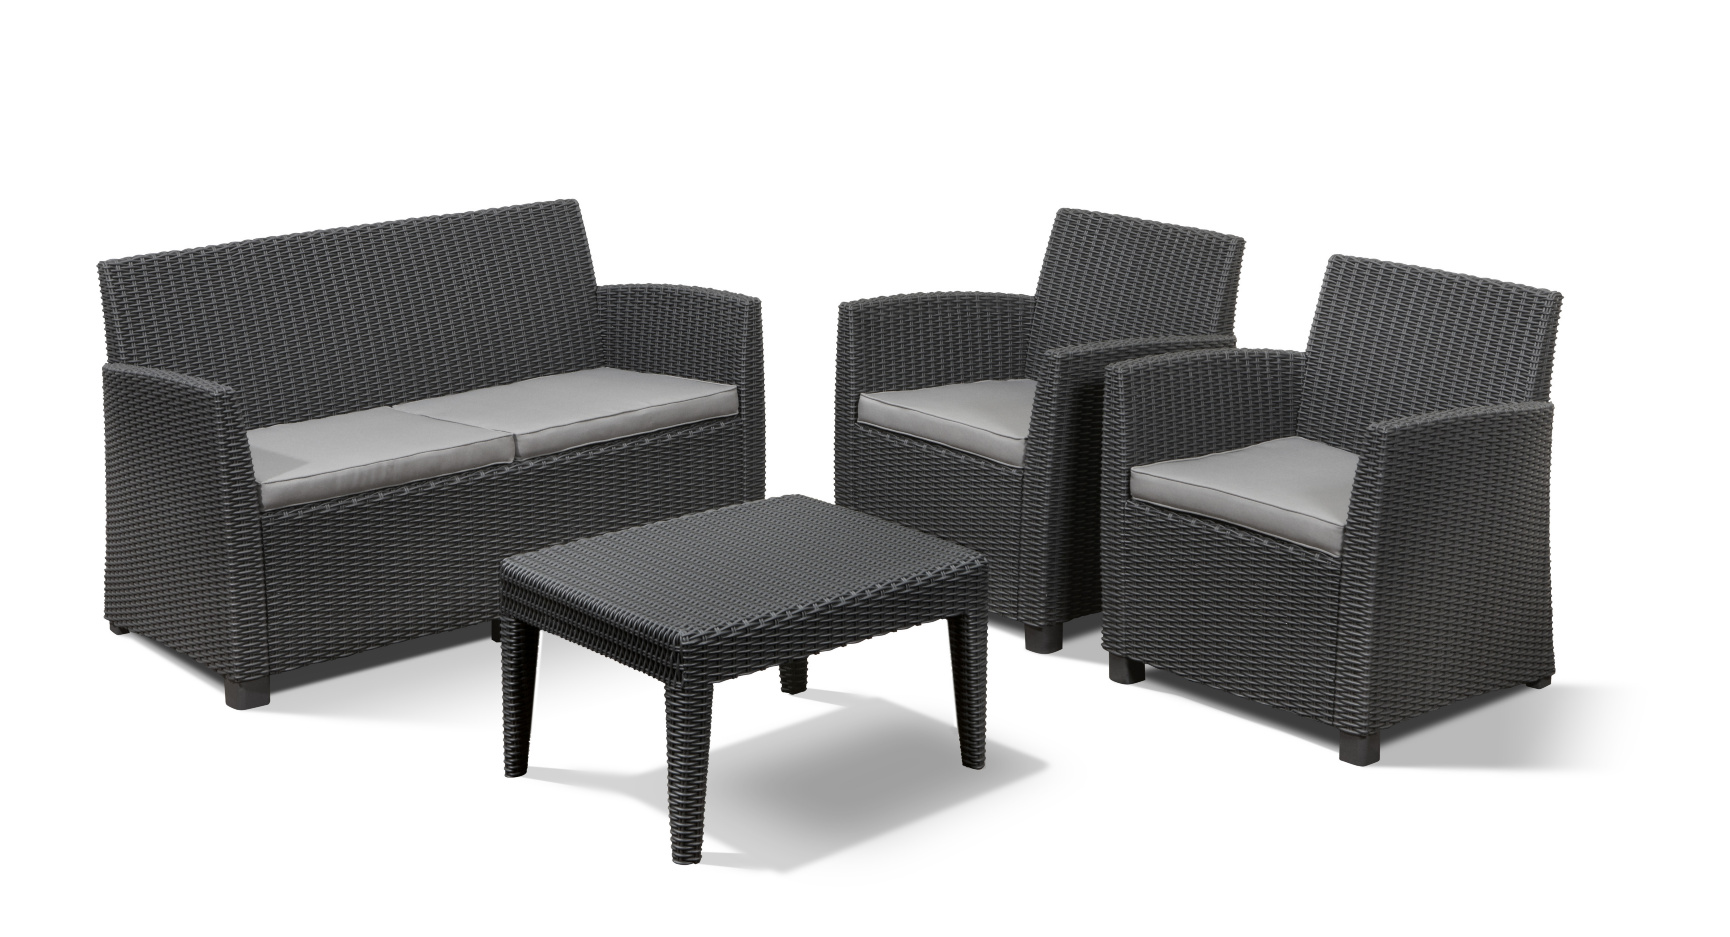 Allibert loungeset loungeset 2017 for Salon de jardin lounge